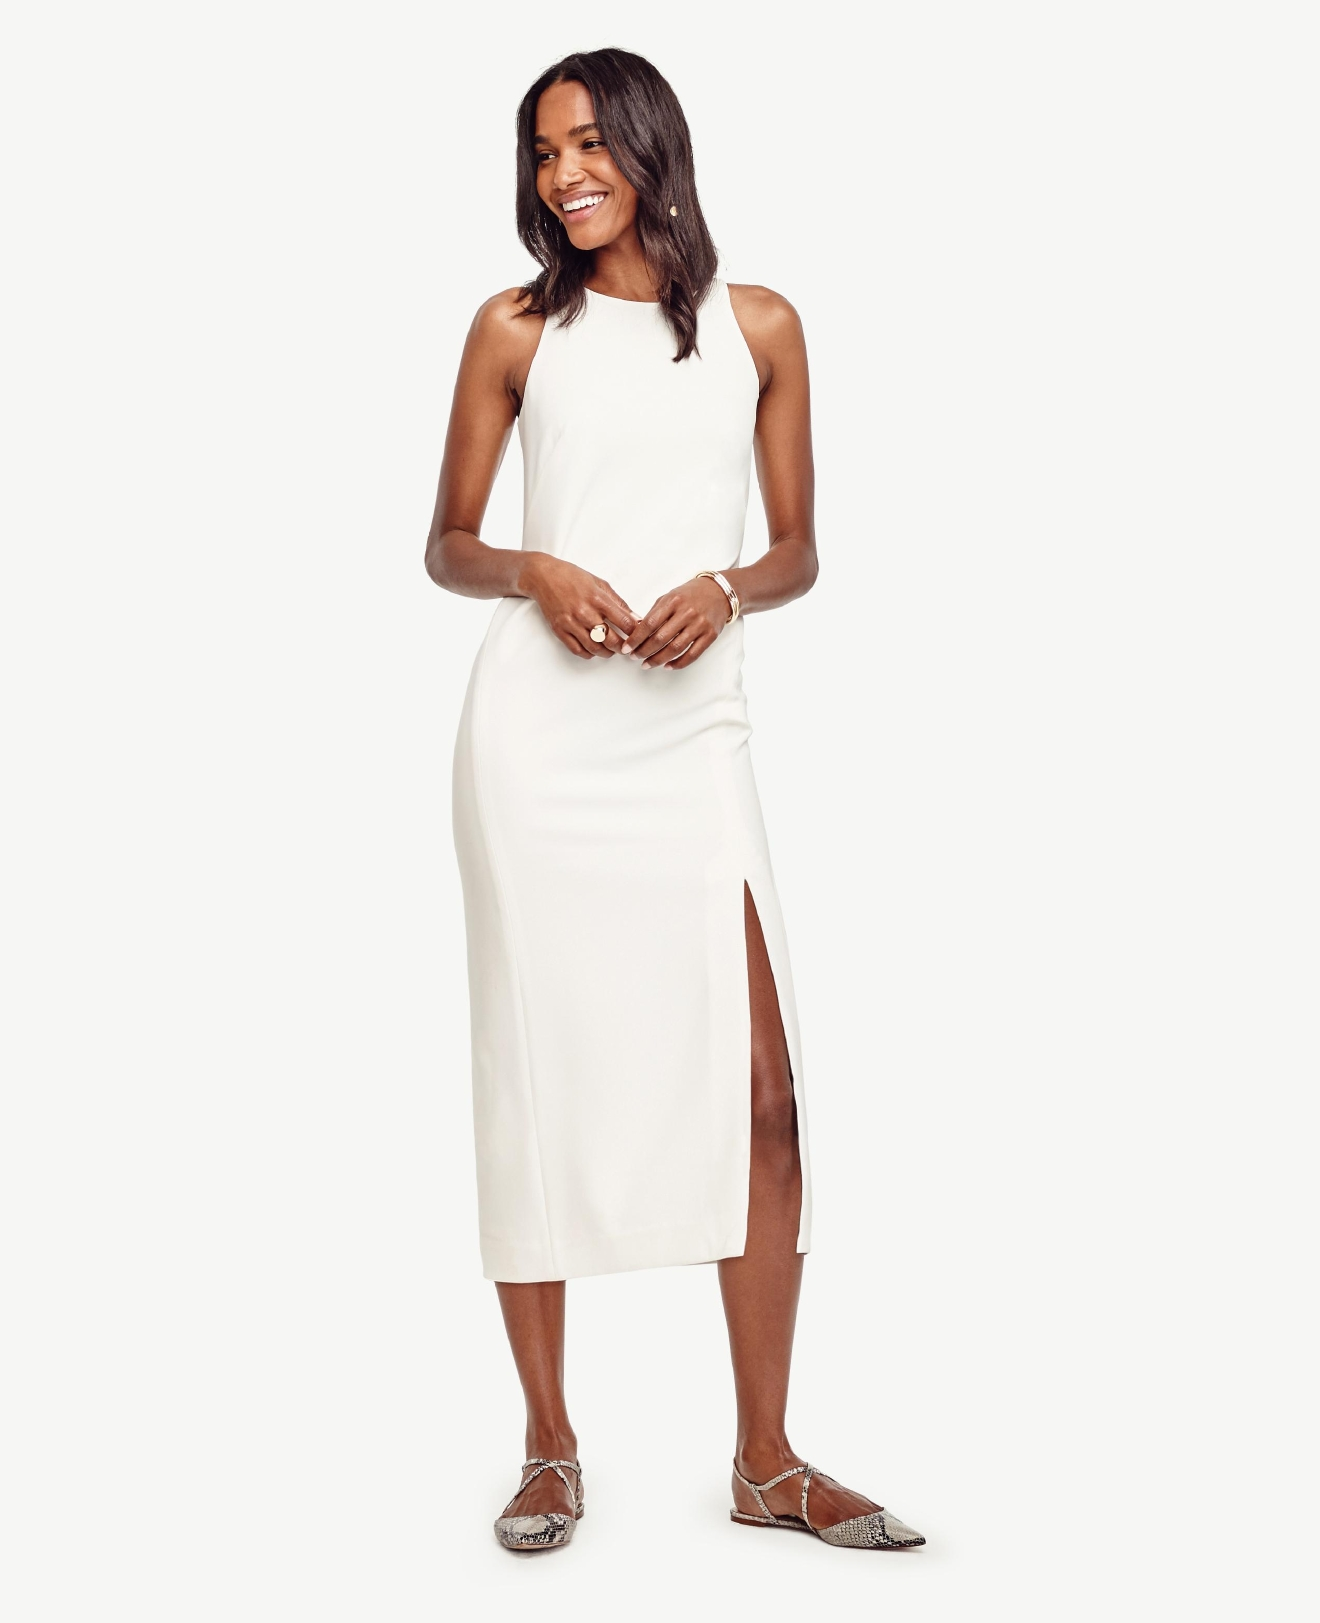 Ann Taylor Split Column Dress, $169, anntaylor.com (Image: Courtesy Ann Taylor)